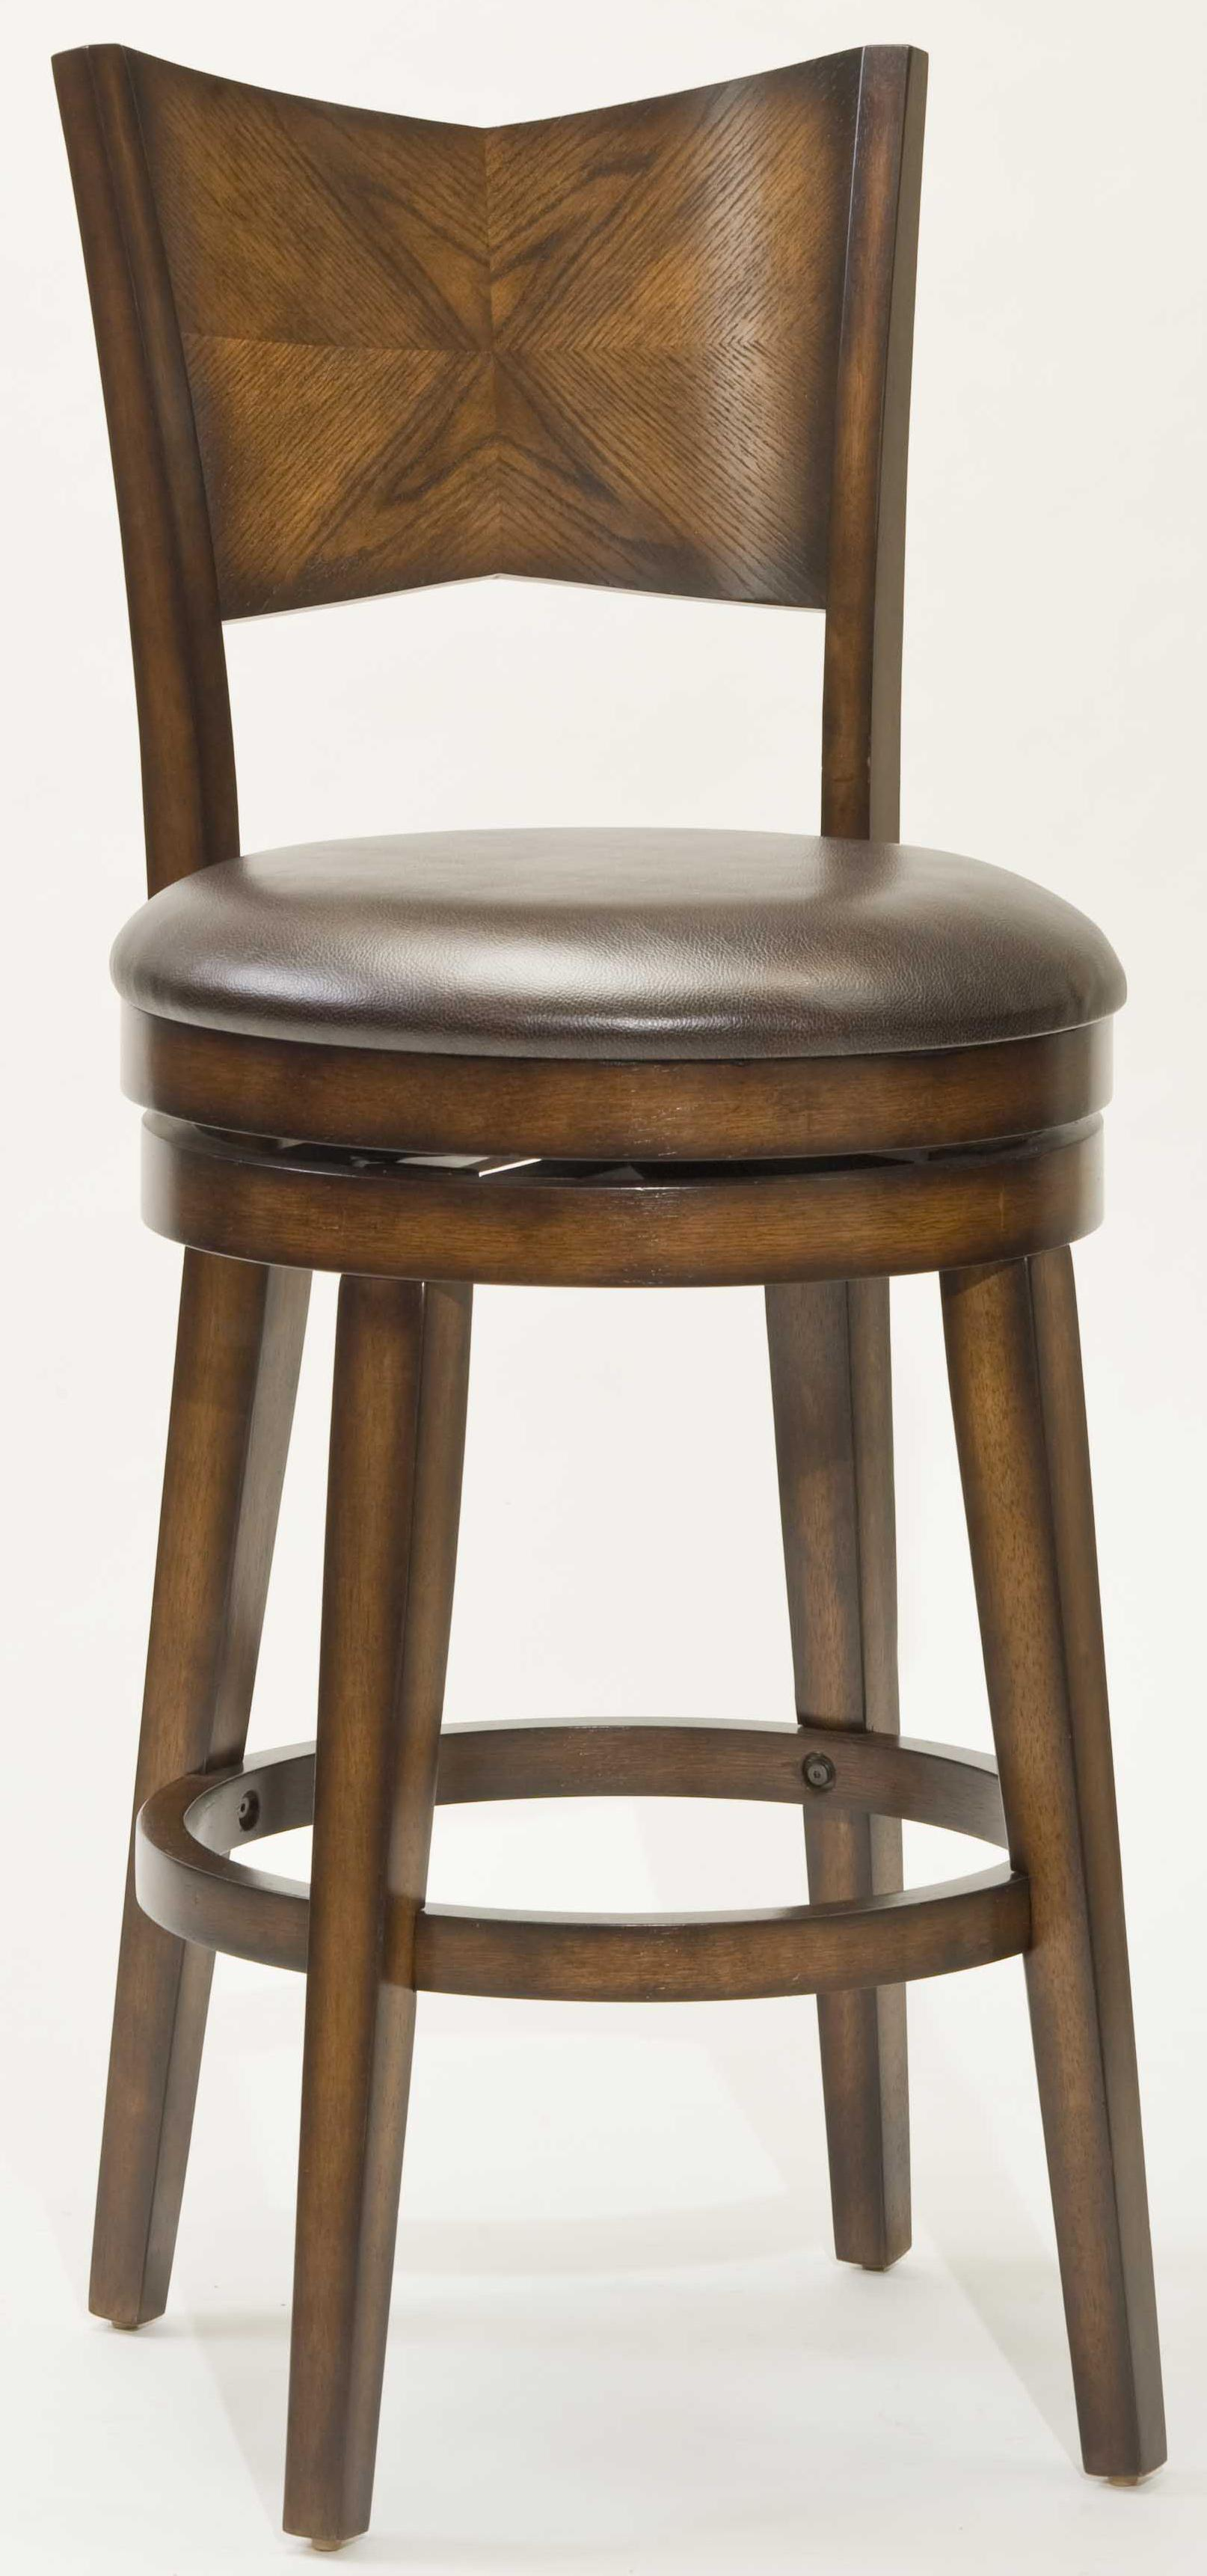 Hillsdale Wood Stools 4477 826 26 5 Quot Counter Height